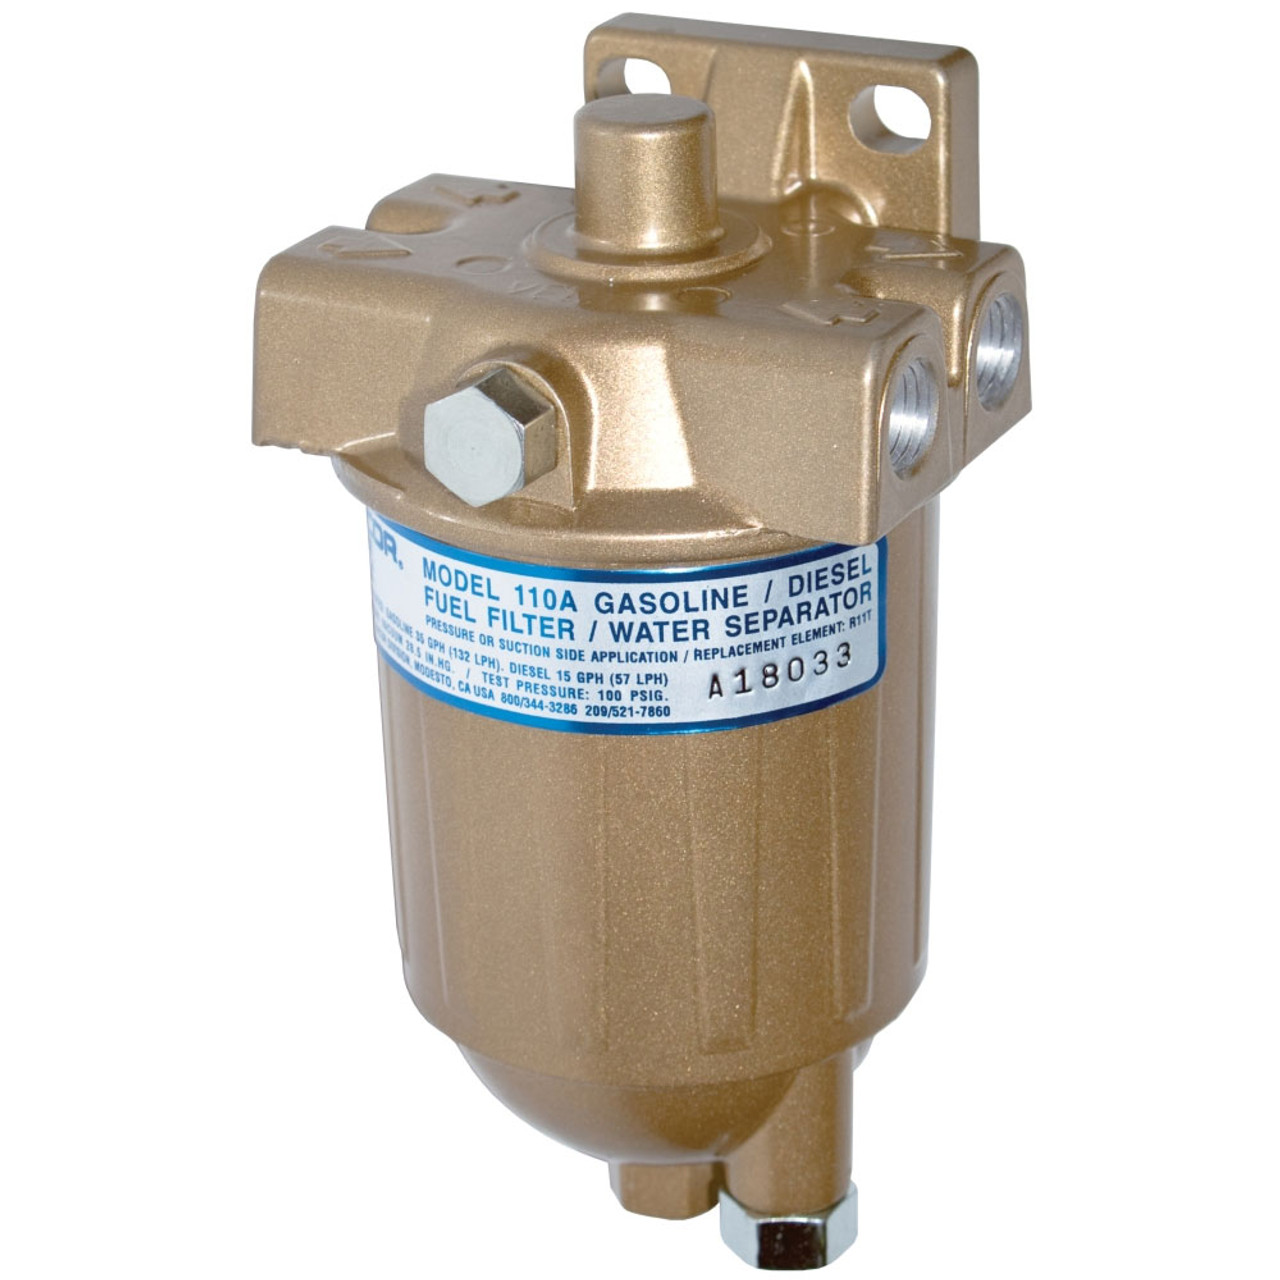 racor 110a series low flow fuel filter water separator filter assembly 10 micron  [ 1000 x 1000 Pixel ]